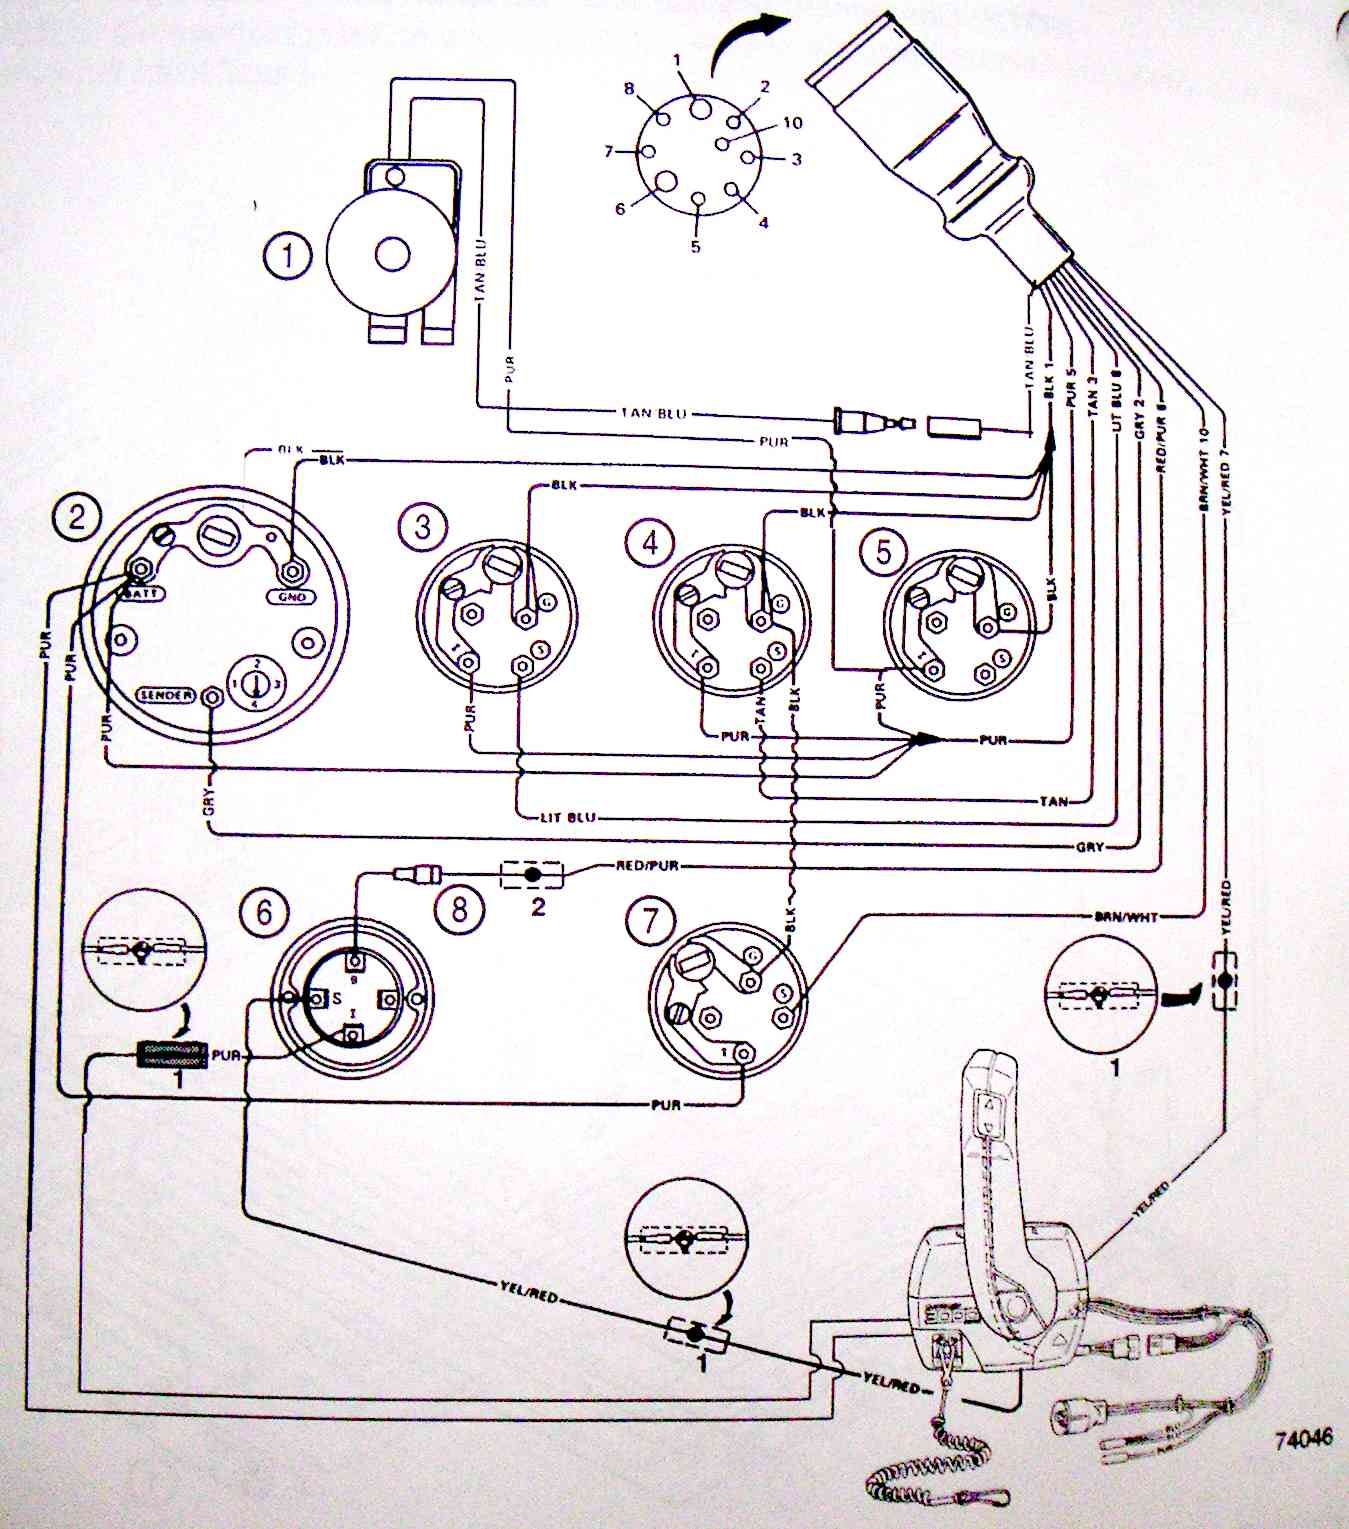 mercruiser 4 3 alternator wiring diagram start stop motor control michael's tractors (simplicity and allis chalmers garden tractors) - mefi-3 ecm ...